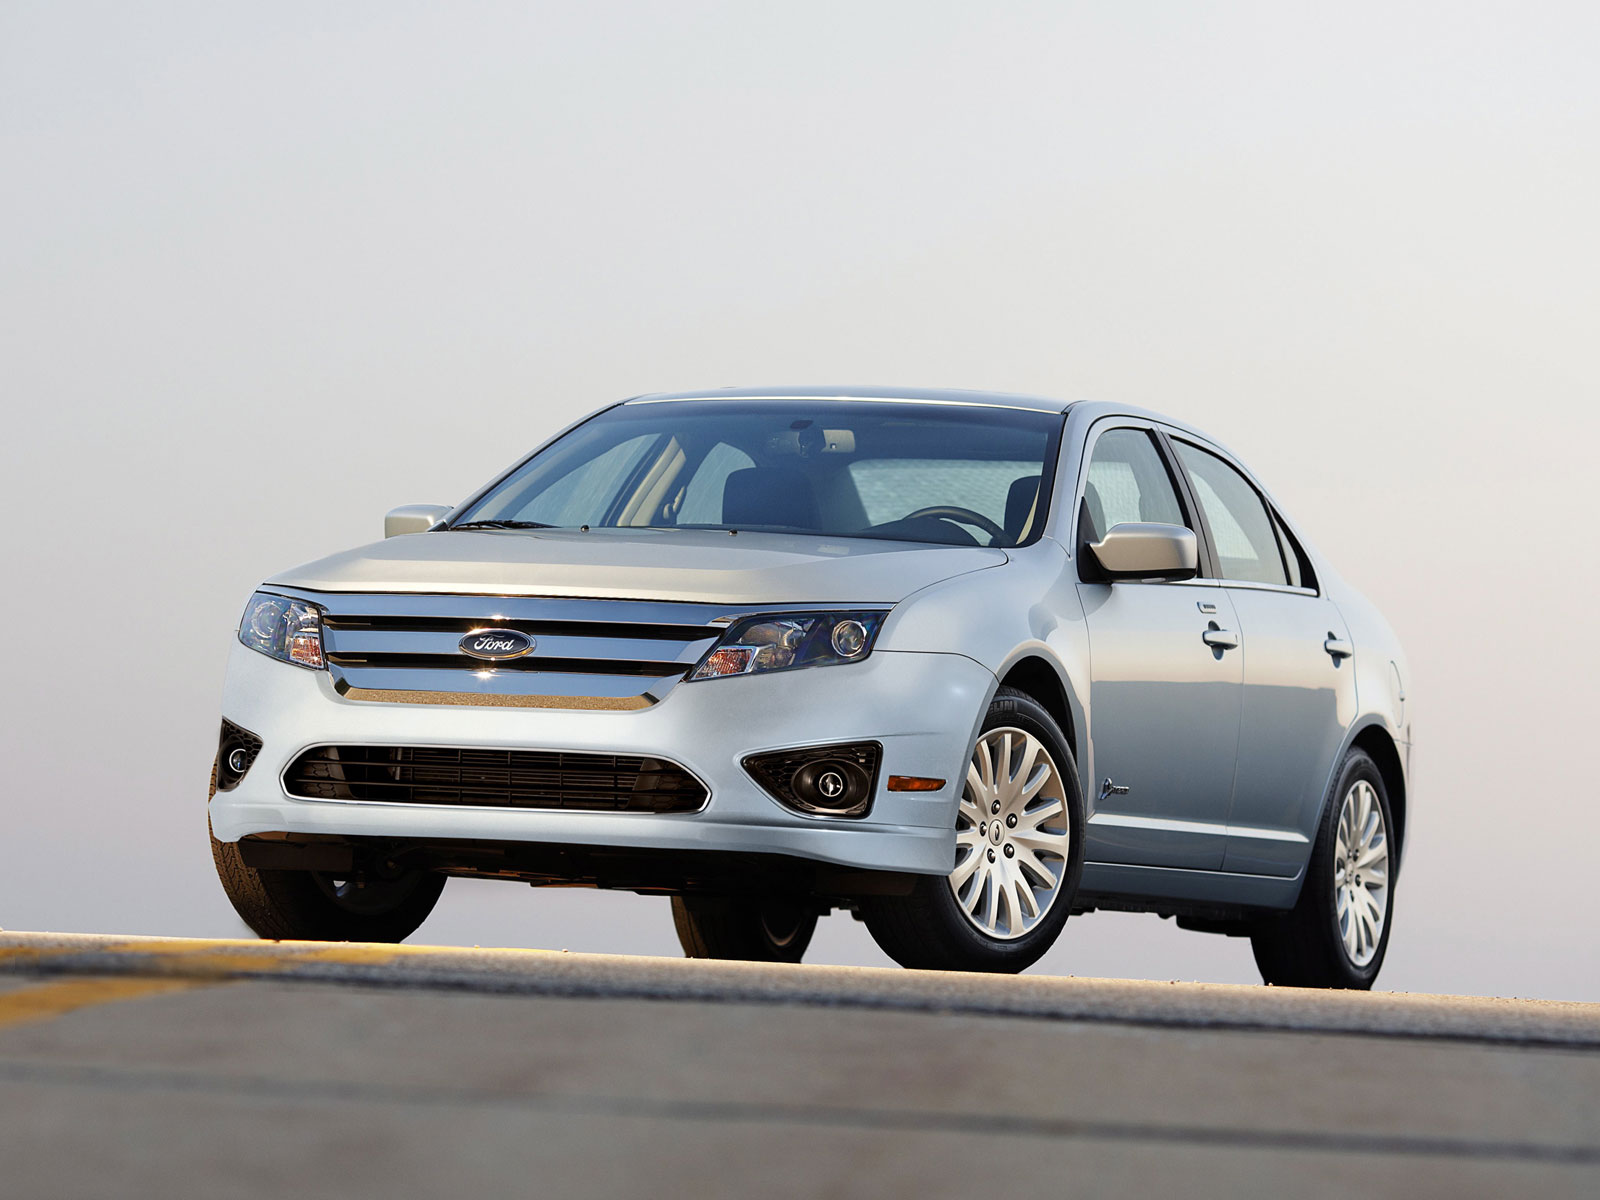 2010 Ford Fusion (c) Ford